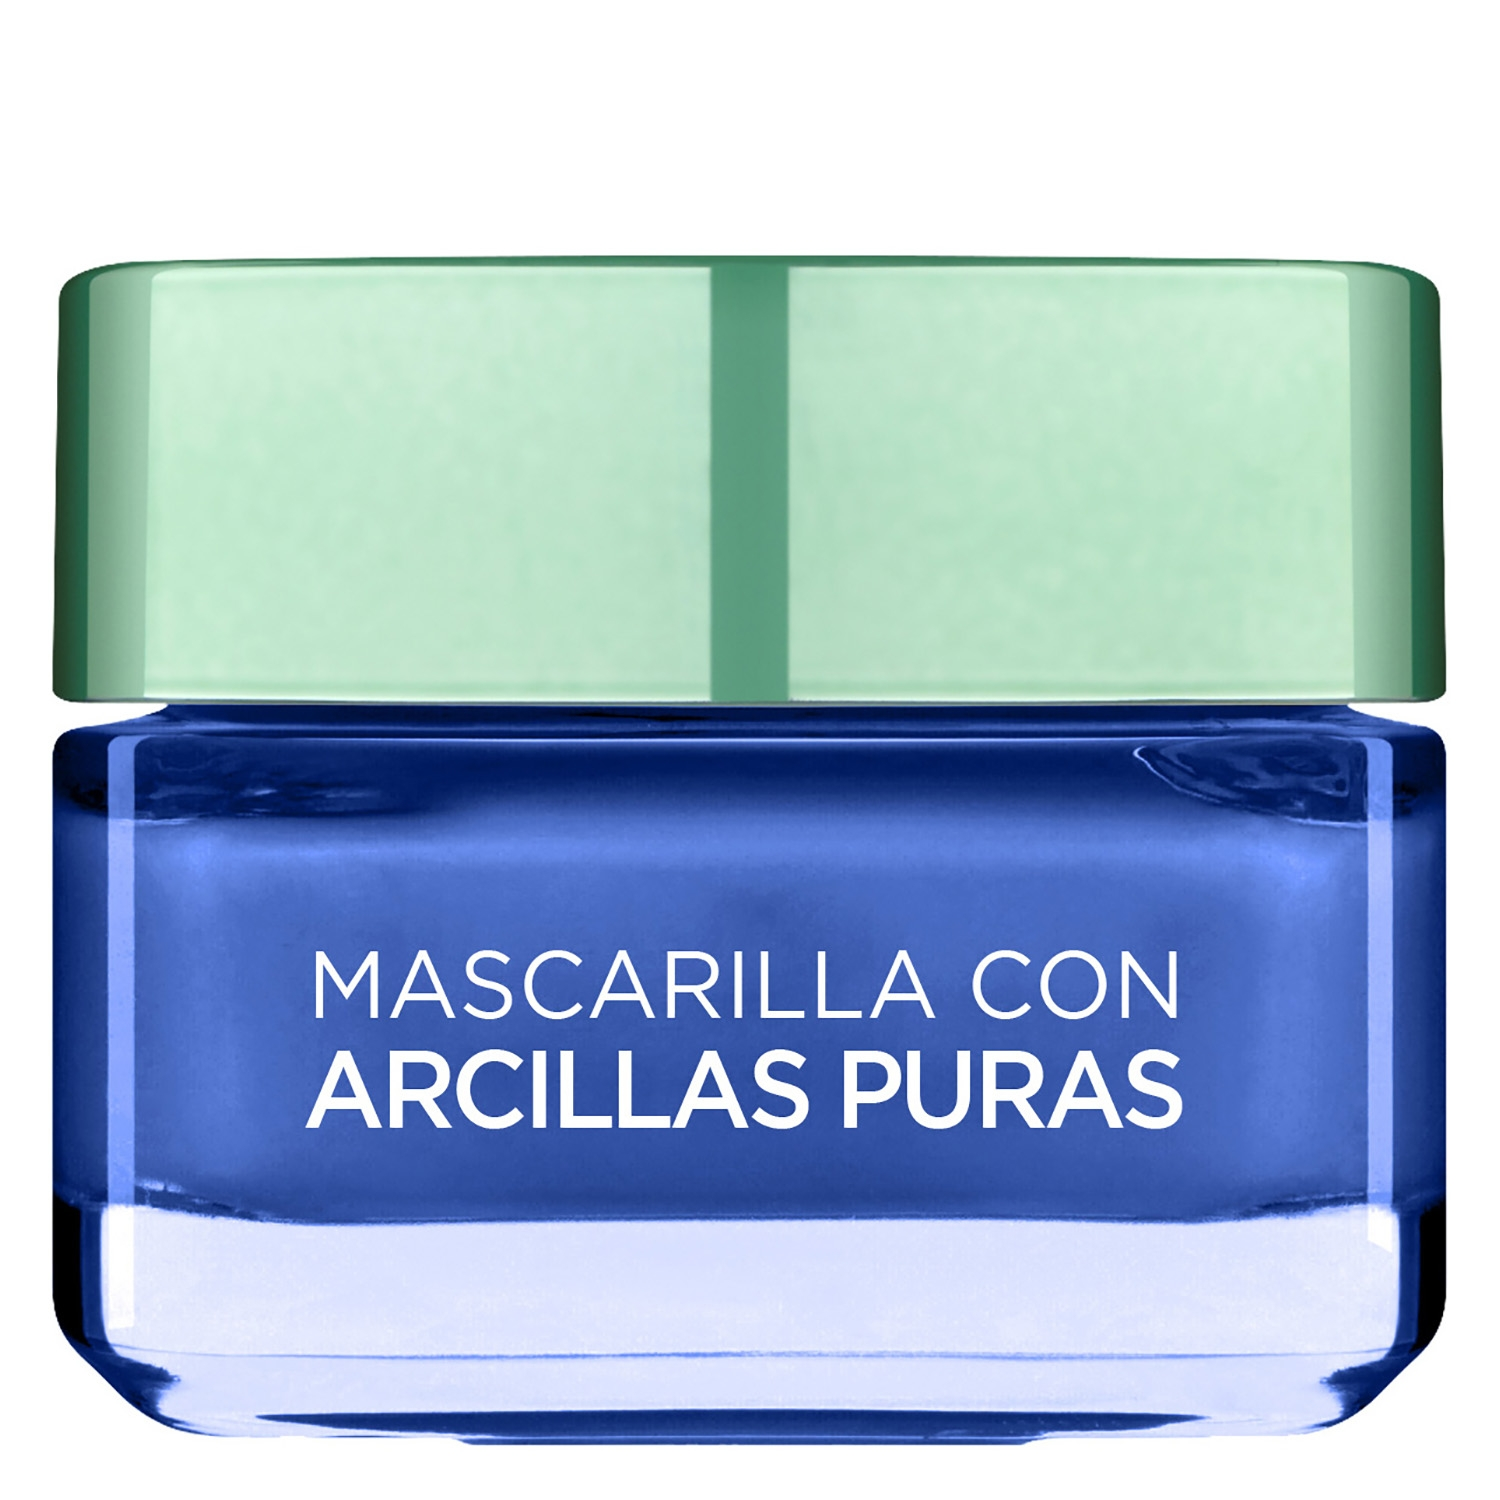 Mascarilla anti-imperfecciones Arcillas puras L'Oréal 50 ml. -